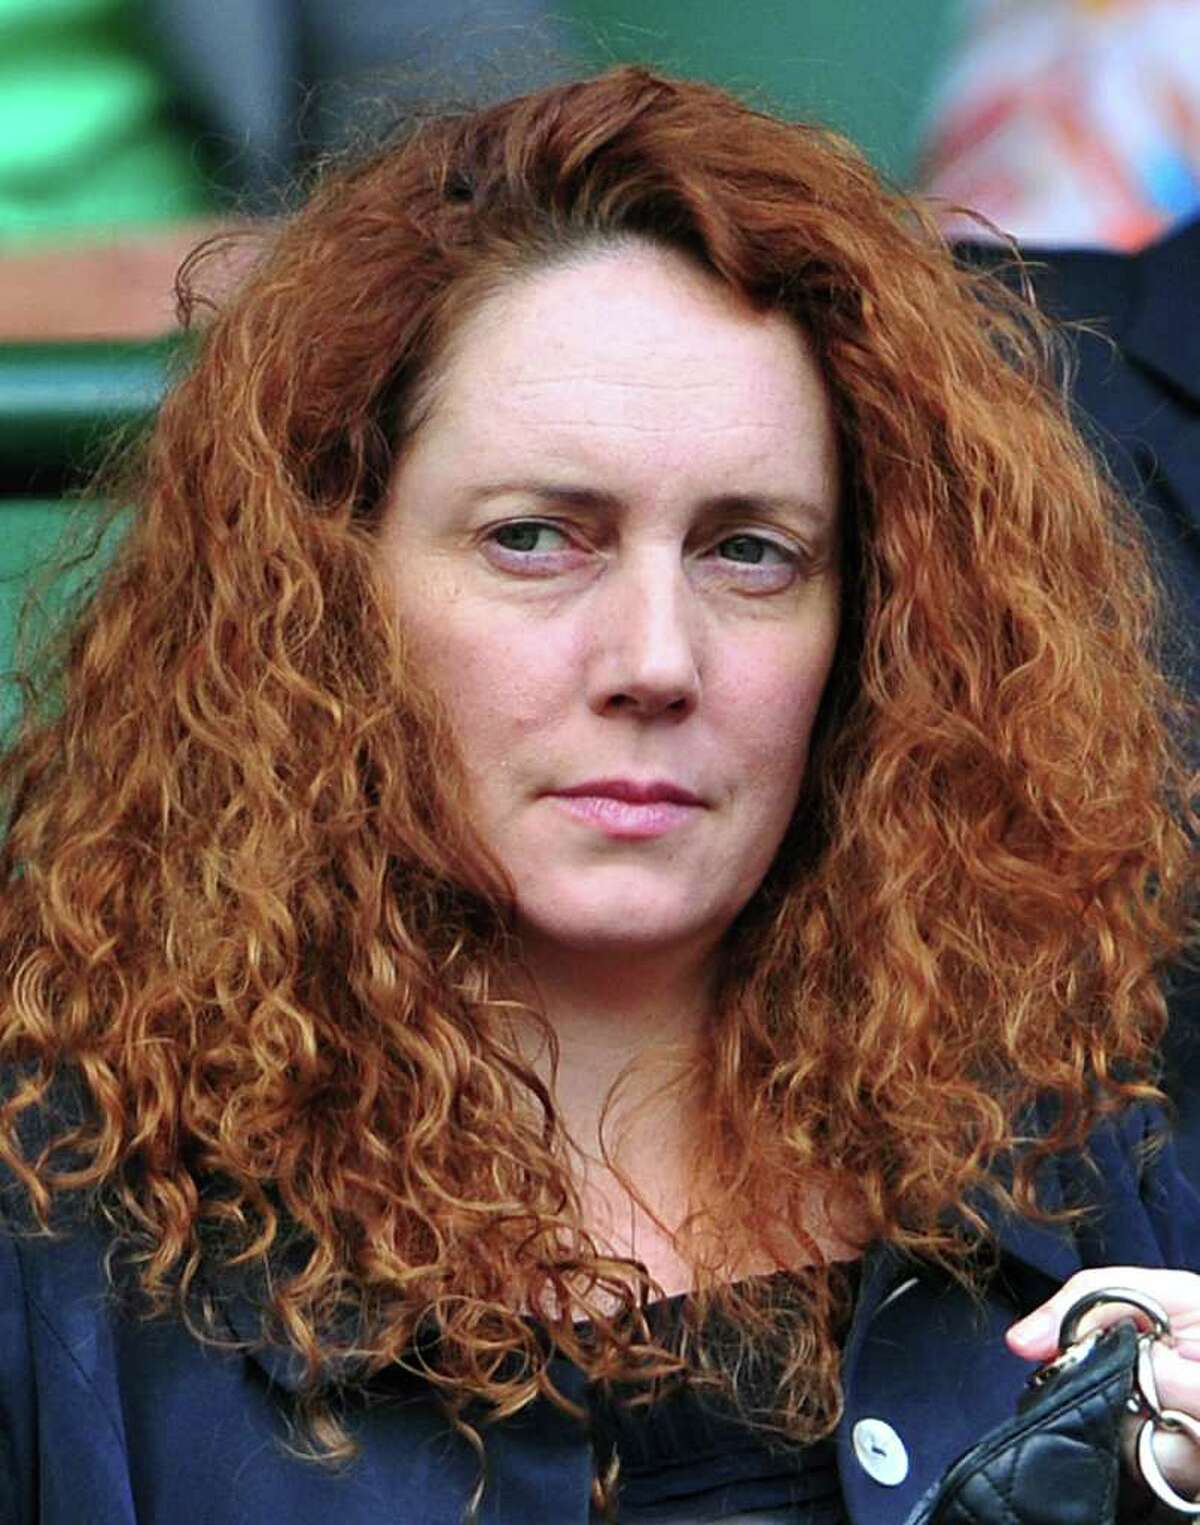 Ex-aide Rebekah Brooks, 5 others, arrested in Operation Weeting.